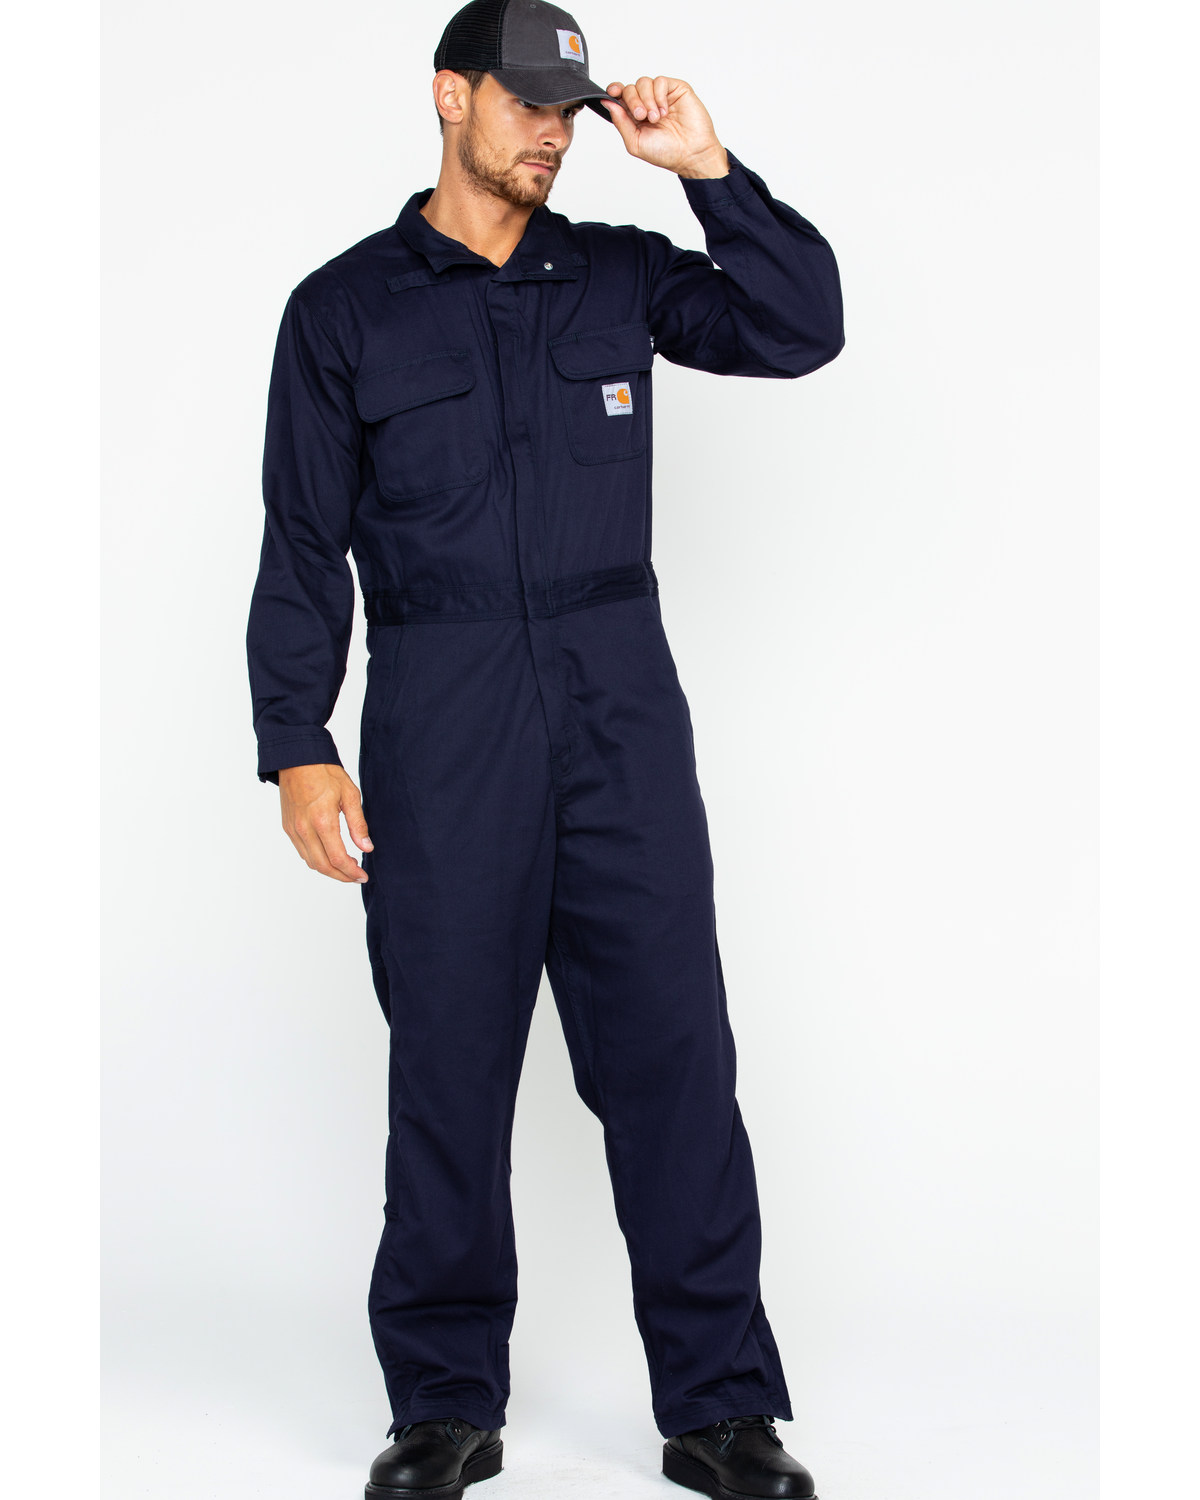 6ac38dd04dd1 Carhartt Men s Navy Flame-Resistant Deluxe Coveralls